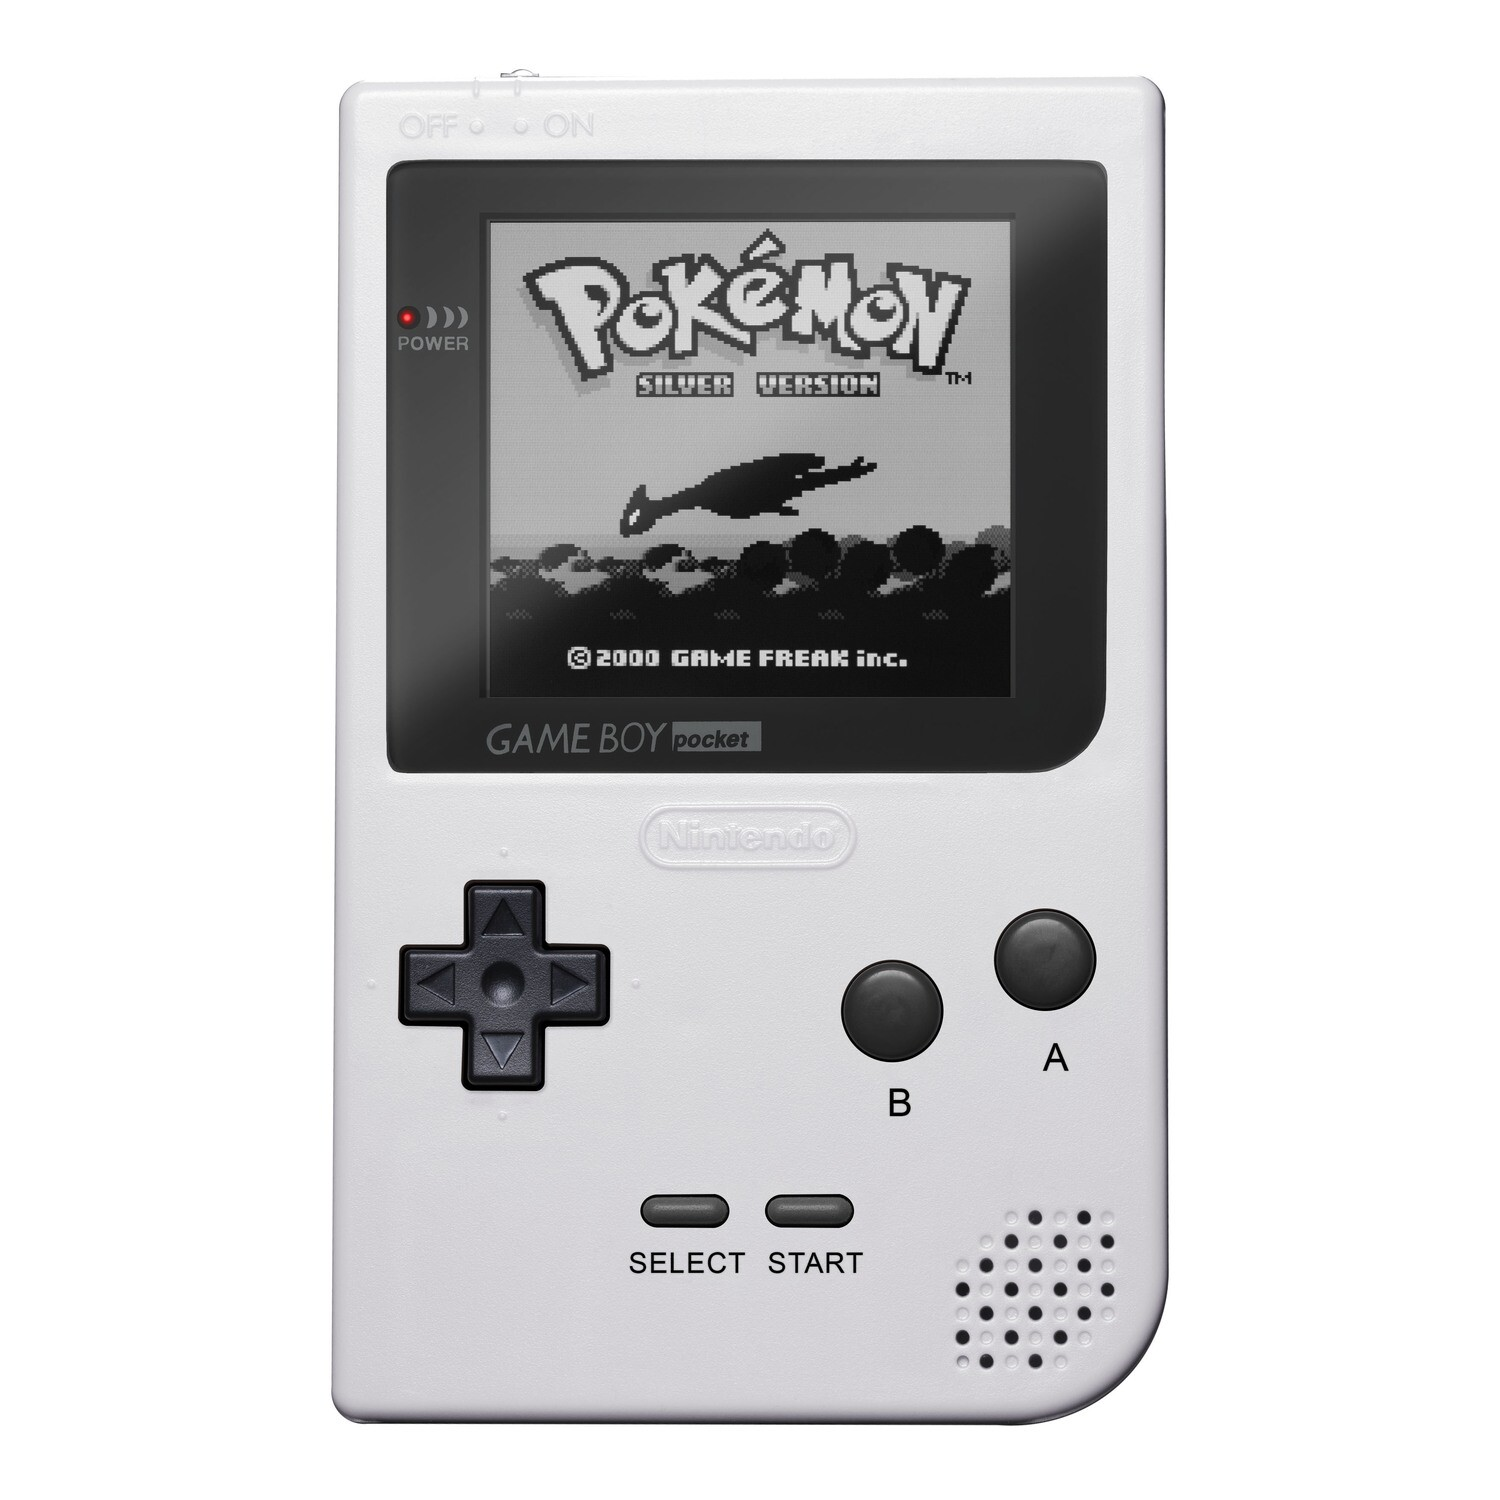 Game Boy Pocket: Prestige Edition (White)